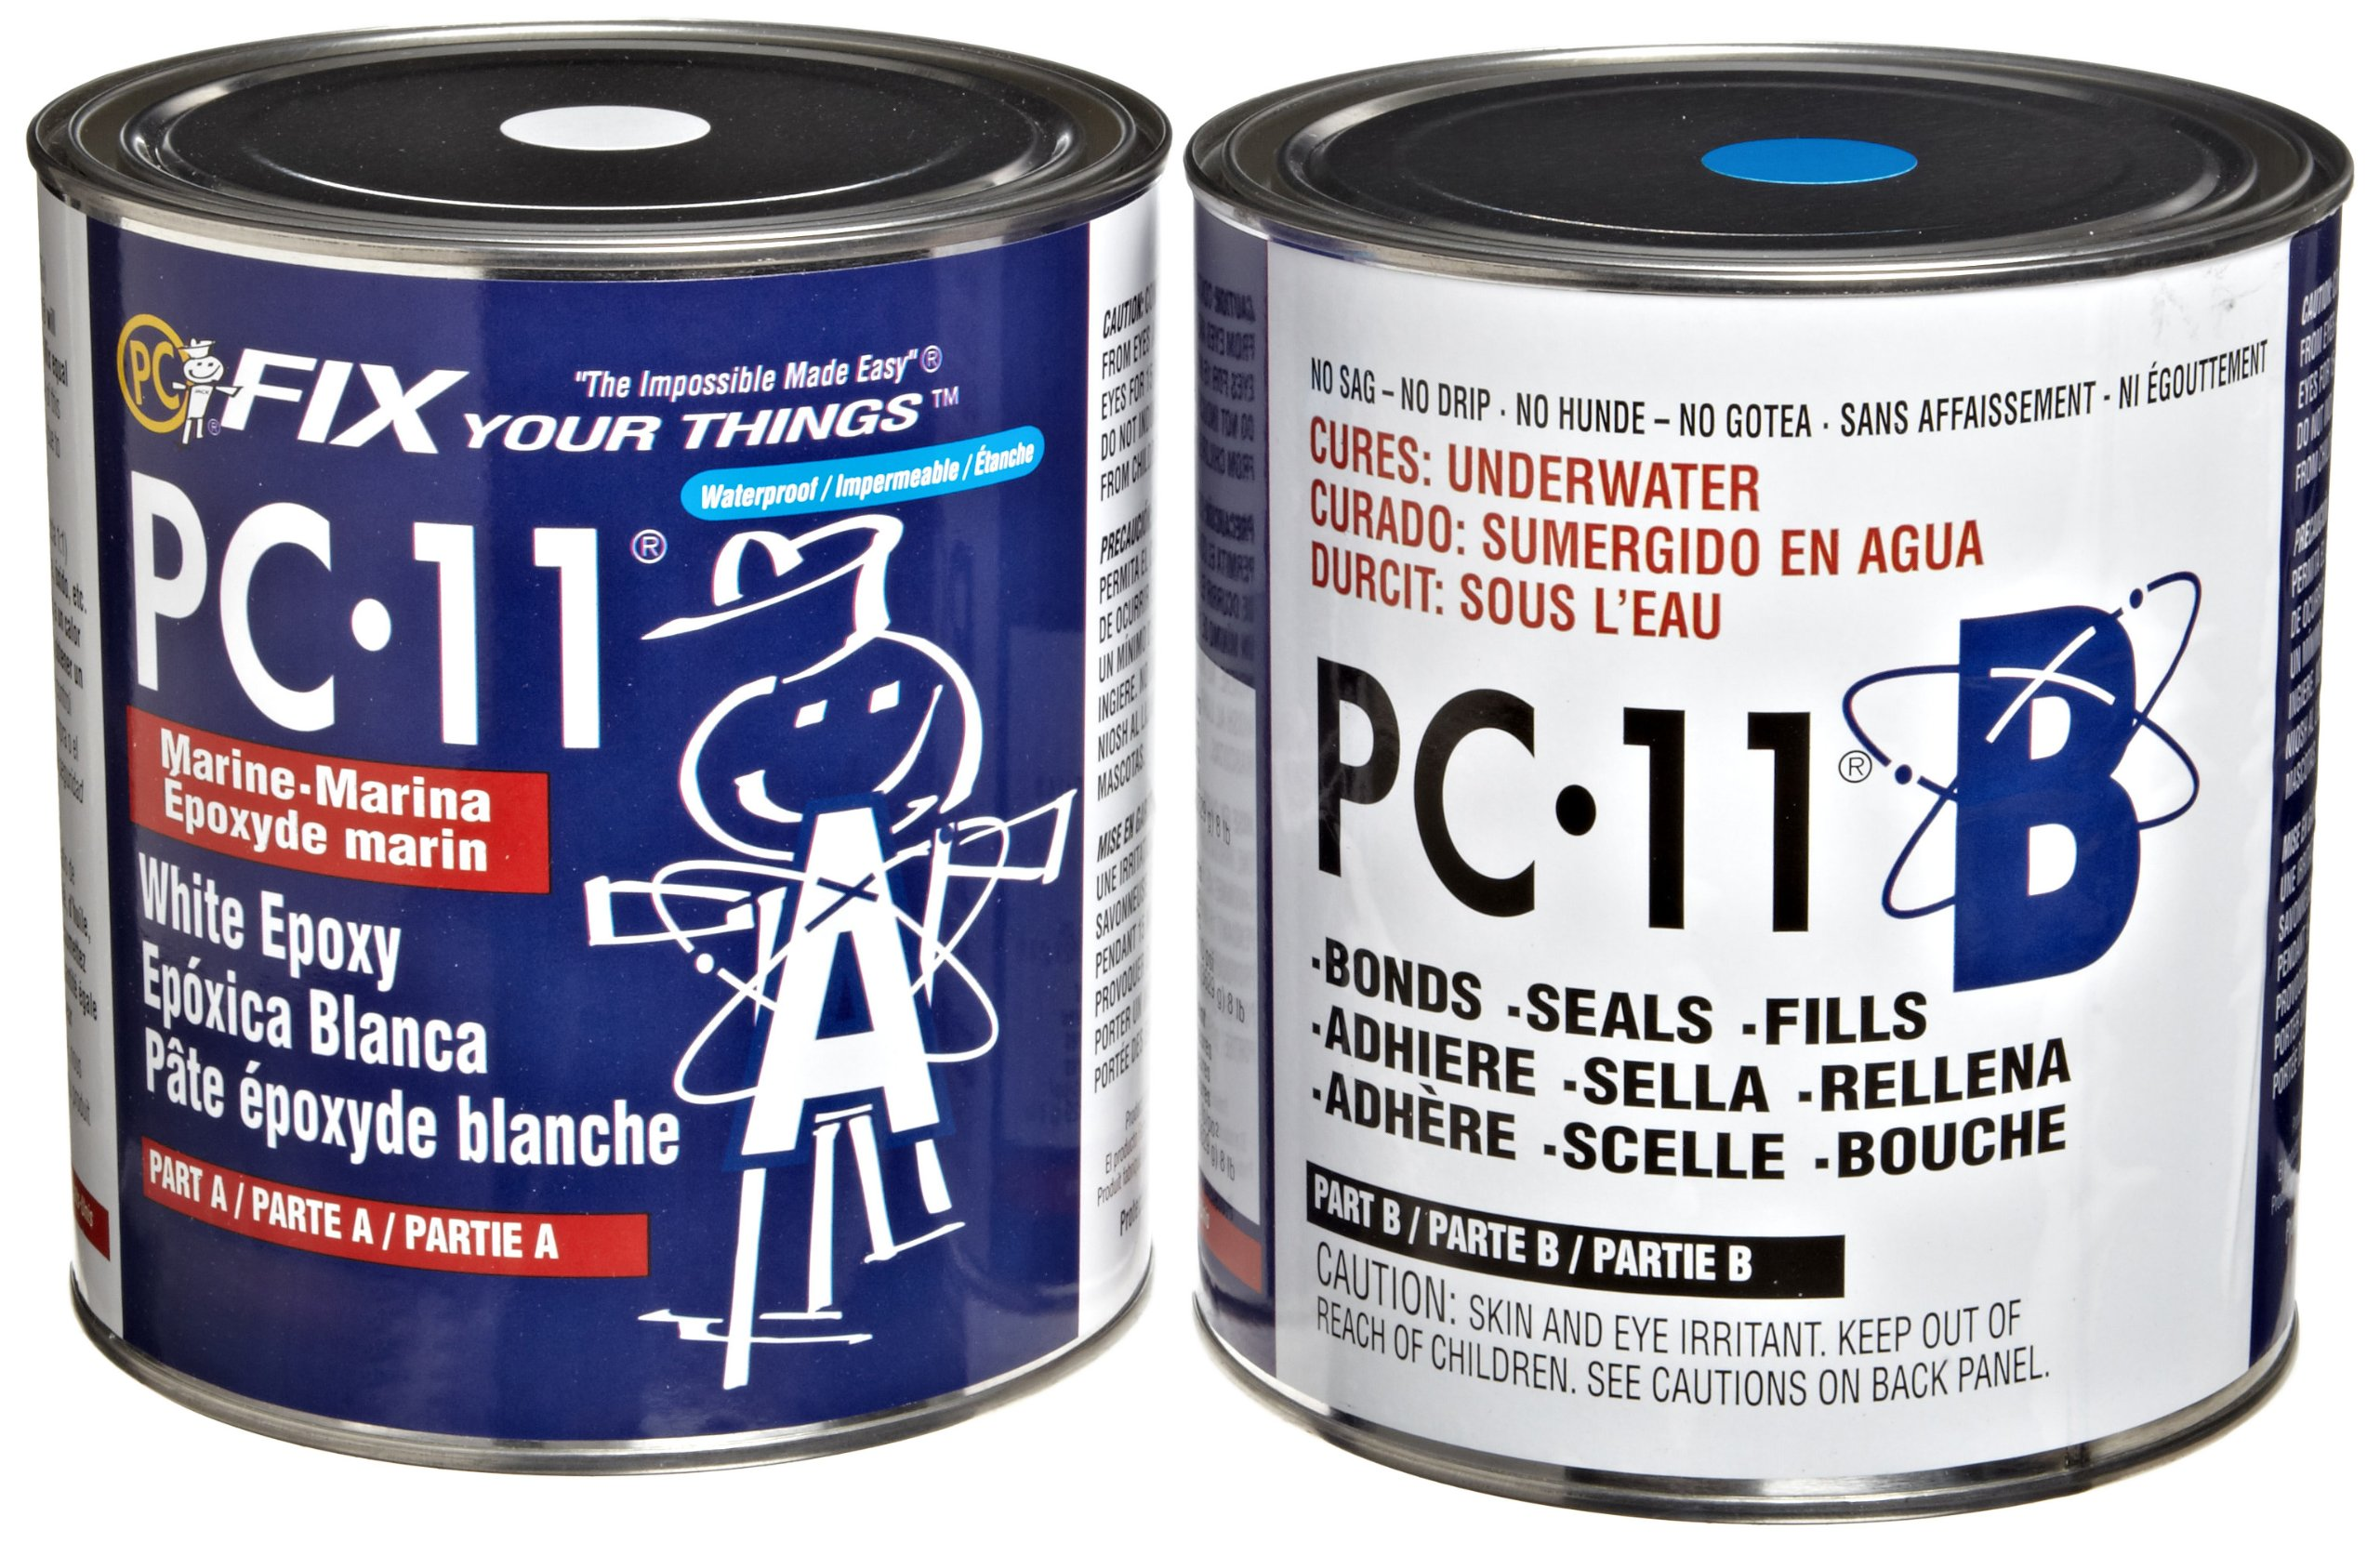 PC-Products PC-11 Epoxy Adhesive Paste, Two-Part Marine Grade, 8lb in Two Cans, Off White 128114